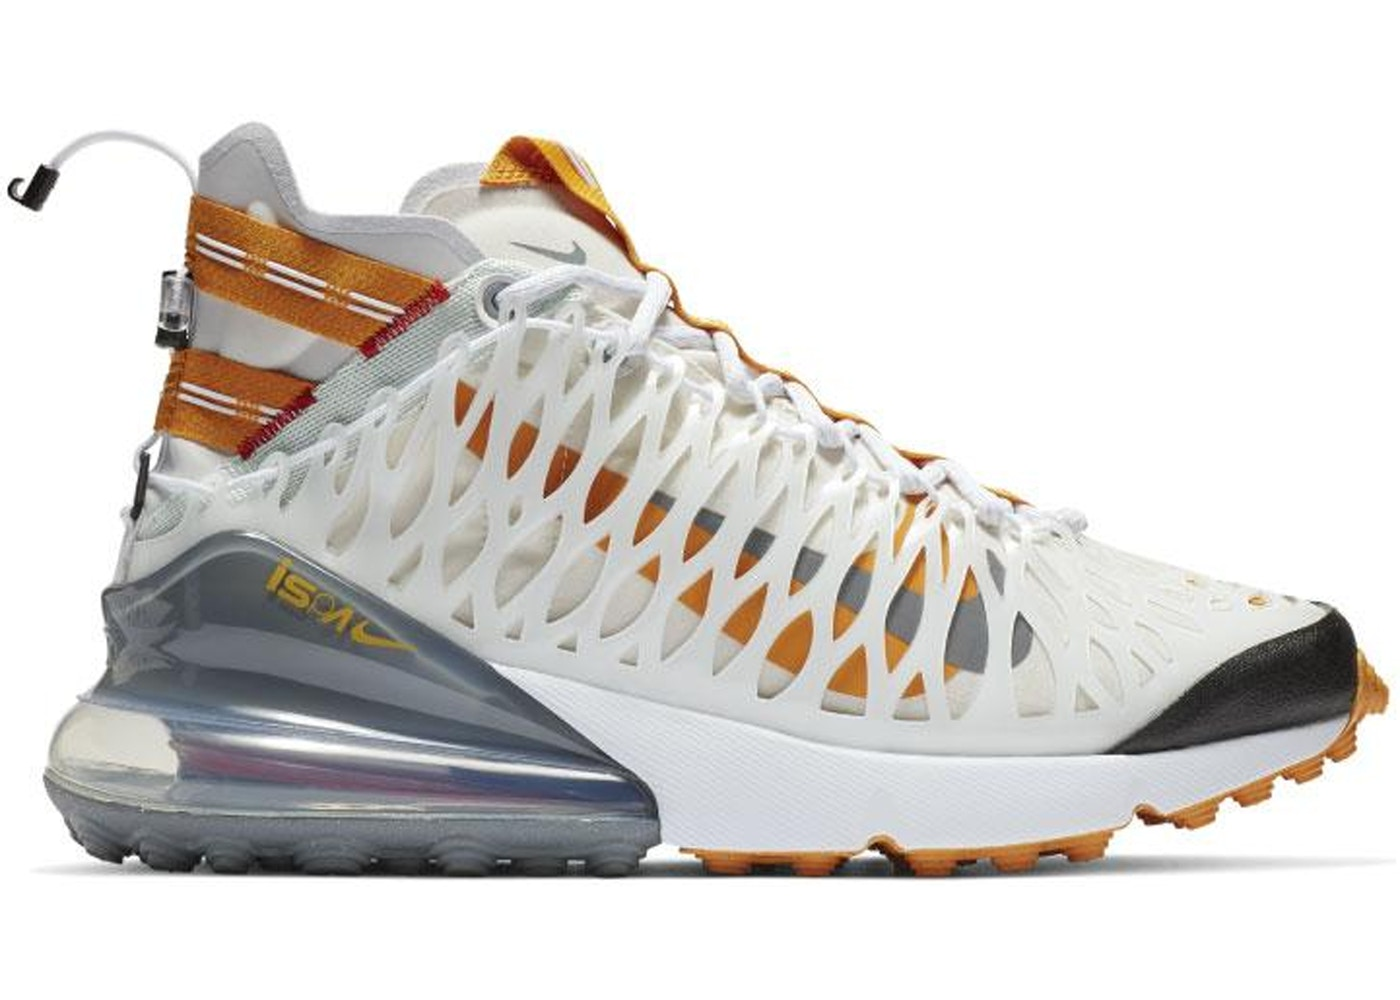 the latest unique design wholesale price Buy Nike Air Max 270 Shoes & Deadstock Sneakers